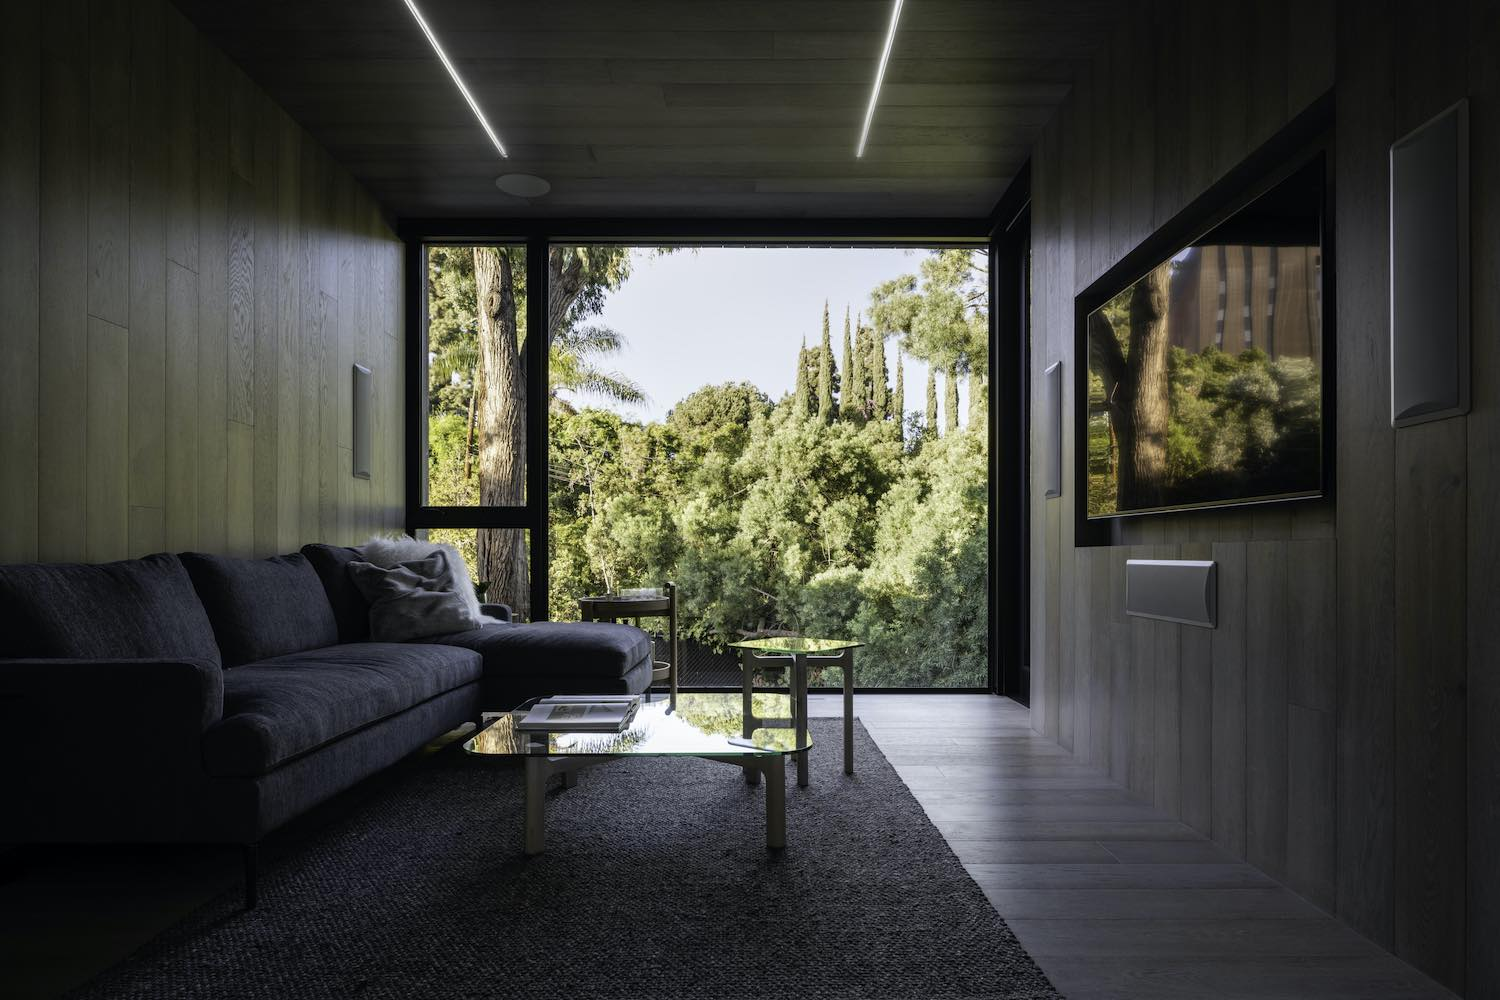 living room with large windows to the backyard